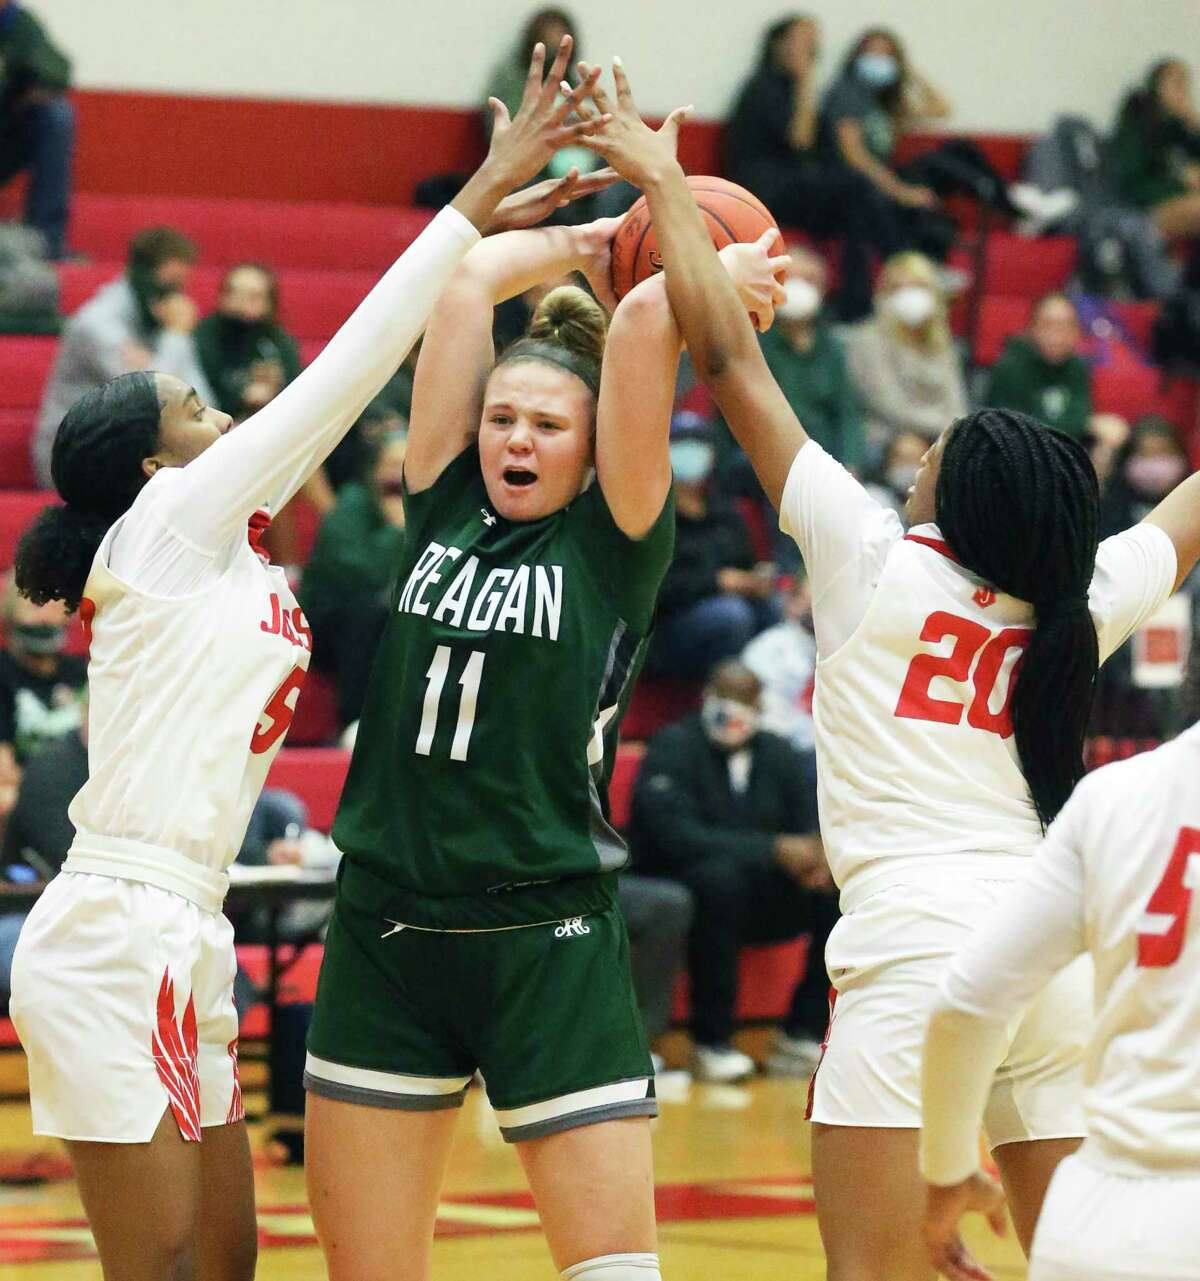 Rattler ball handler Samantha Wagner gets pressured by a double team when she pulls up the dribble as Judson hosts Reagan in girls basketball at Judson gym Dec. 1, 2020.